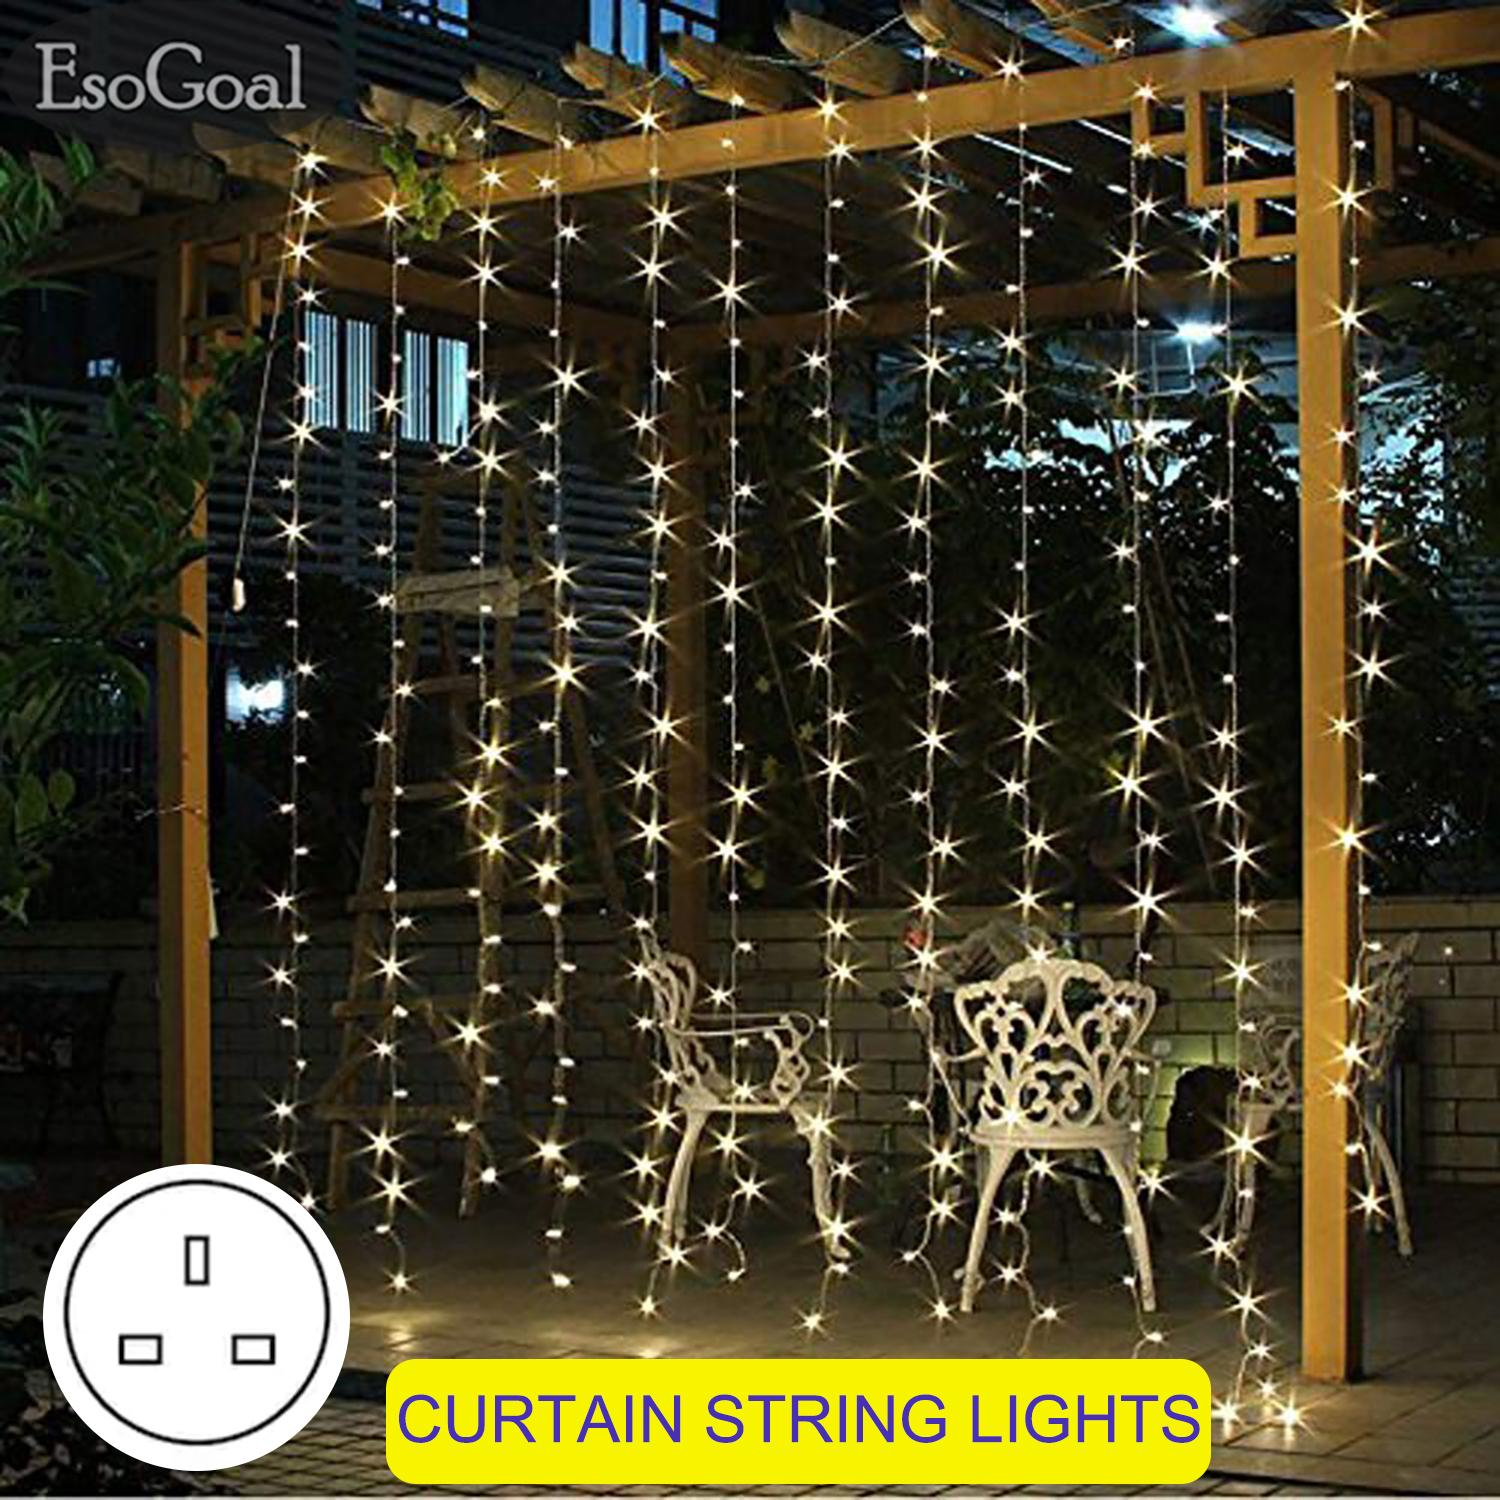 EsoGoal Fairy Lights Curtain Droop LED String Strip Light Icicle Curtain String Lights Window Wall Curtain Decoration Lights for Christmas Xmas Wedding Party